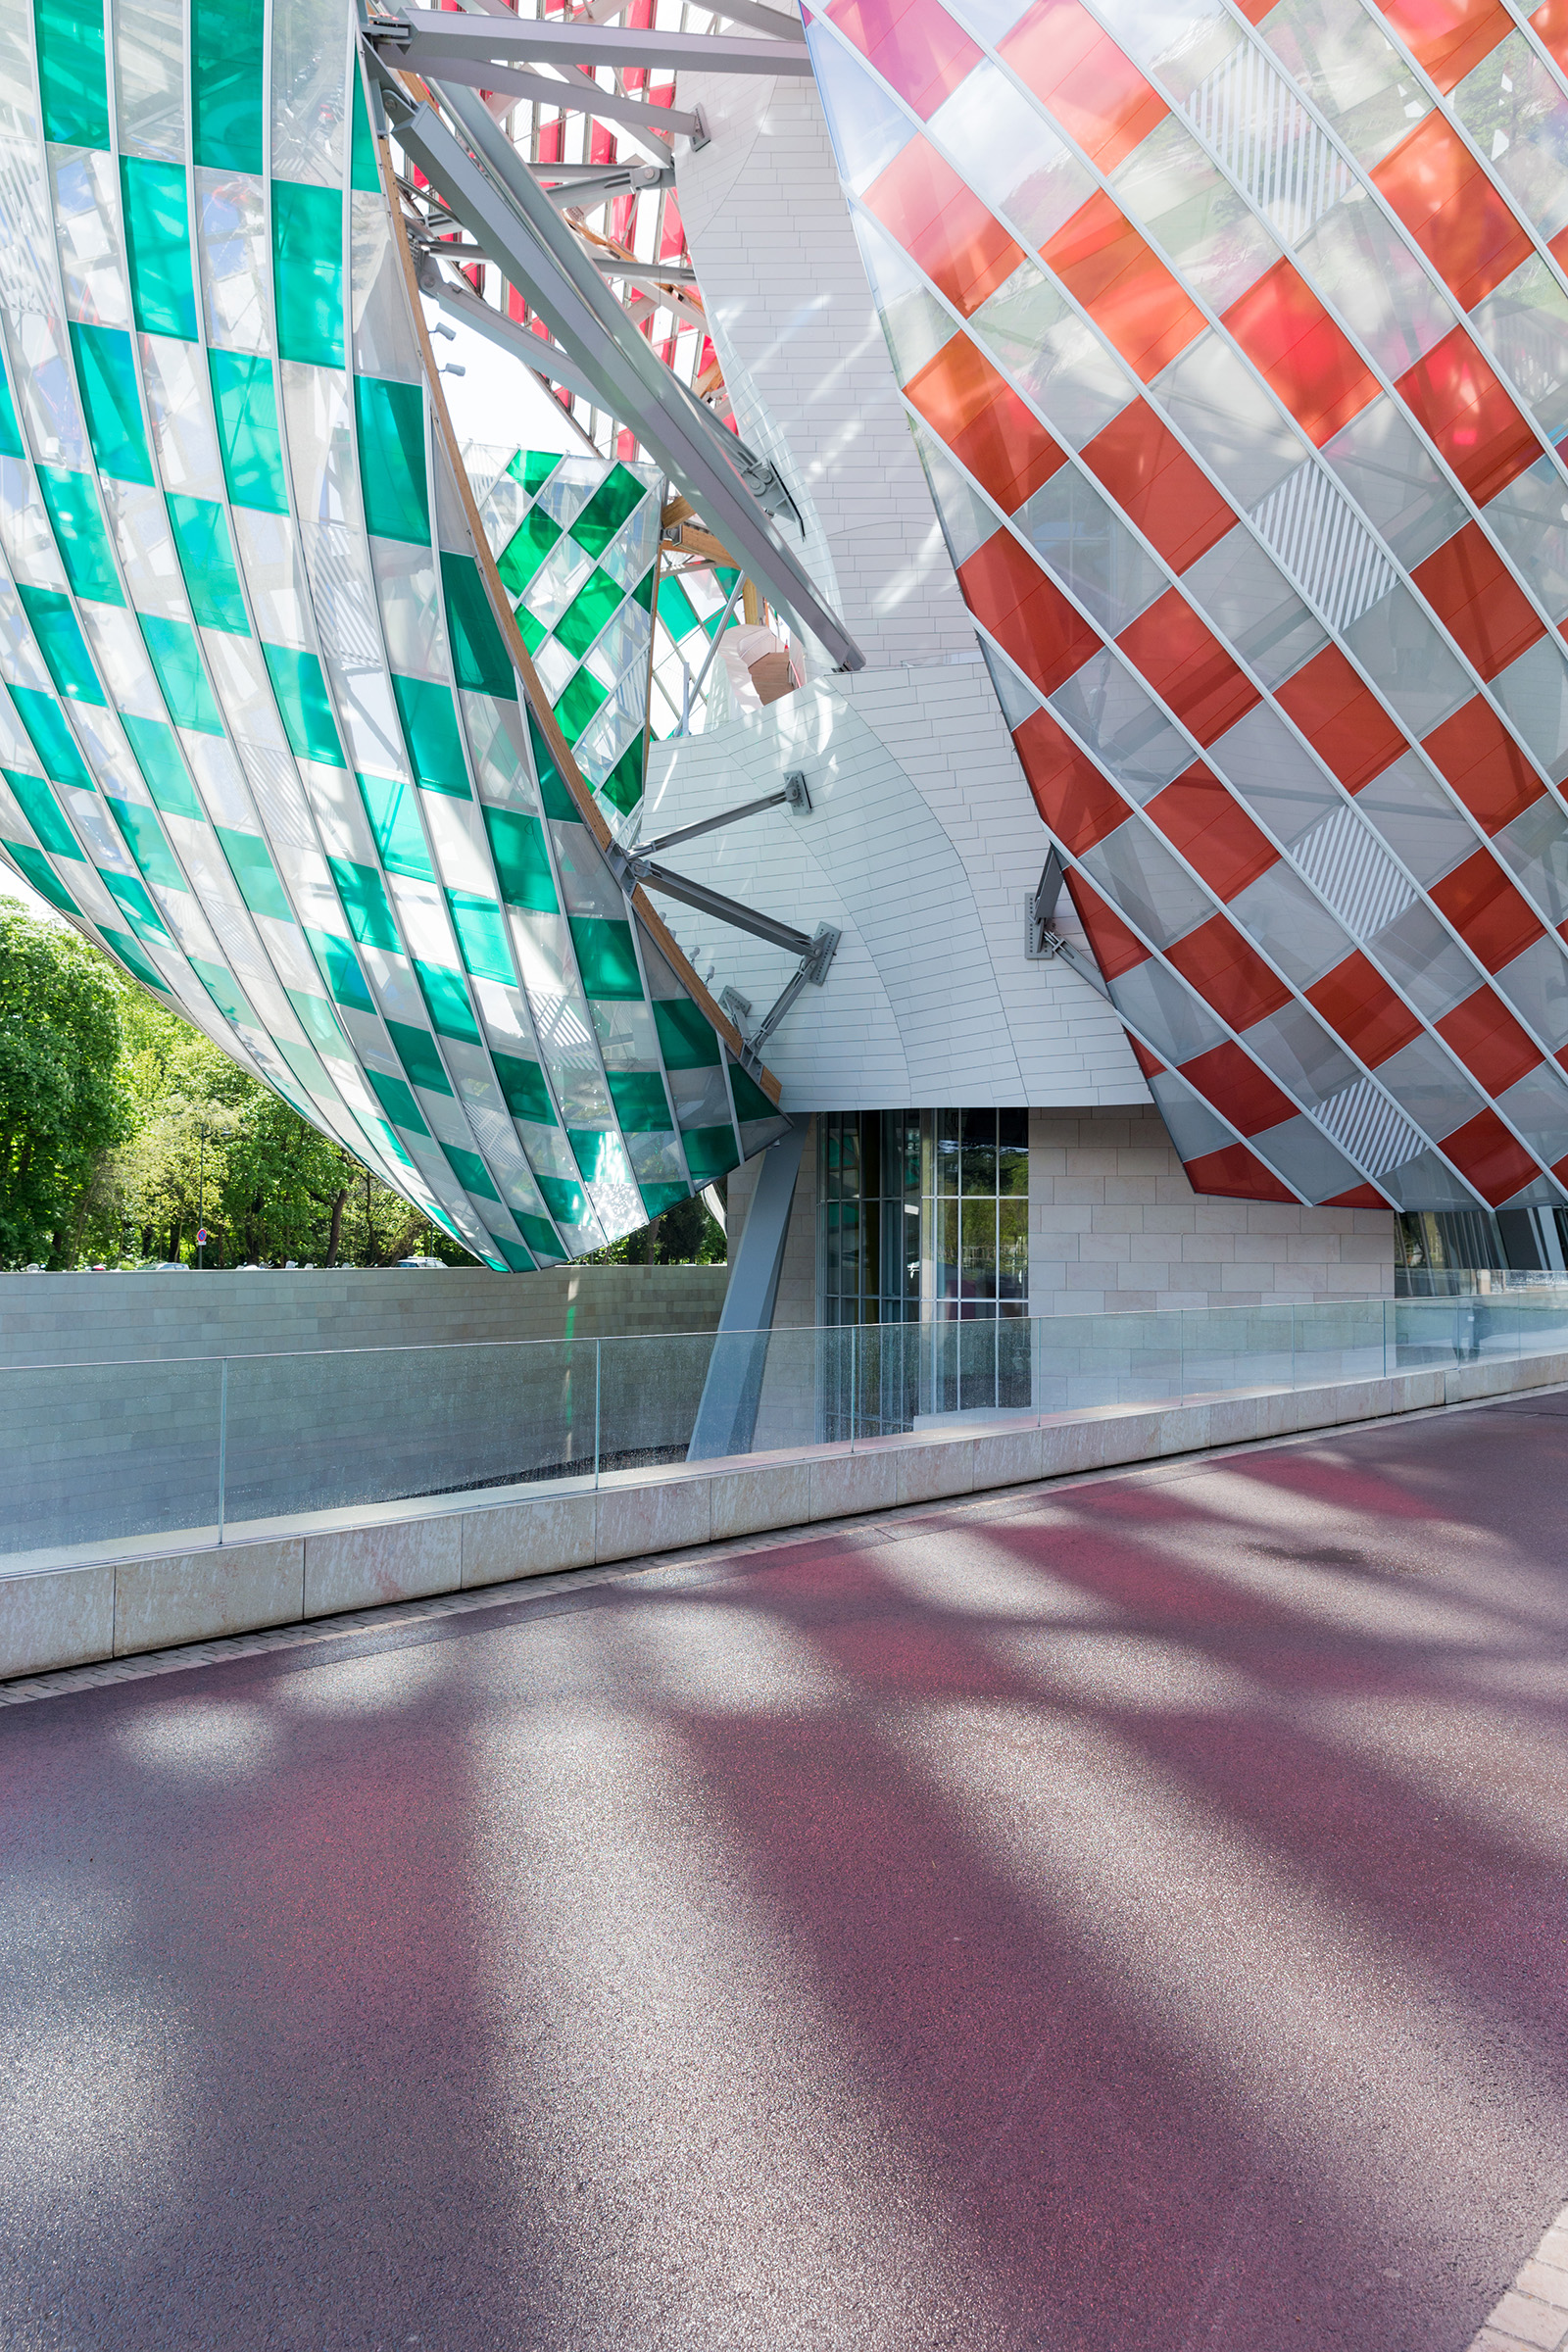 Fondation Louis Vuitton - Daniel Buren